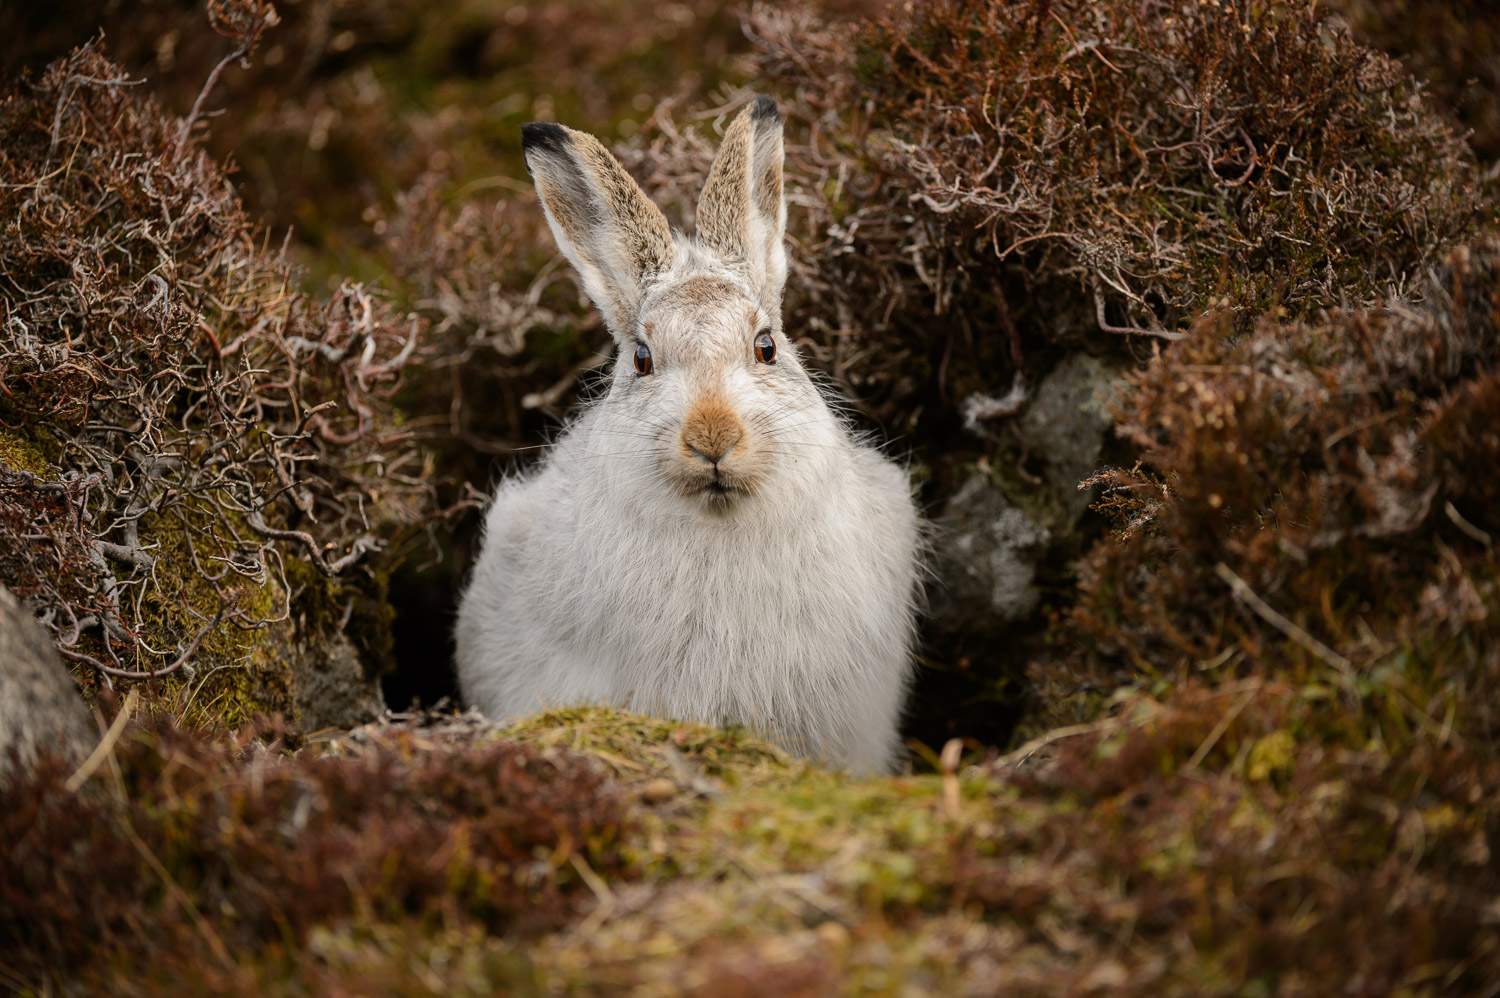 Mountain Hare in its Form